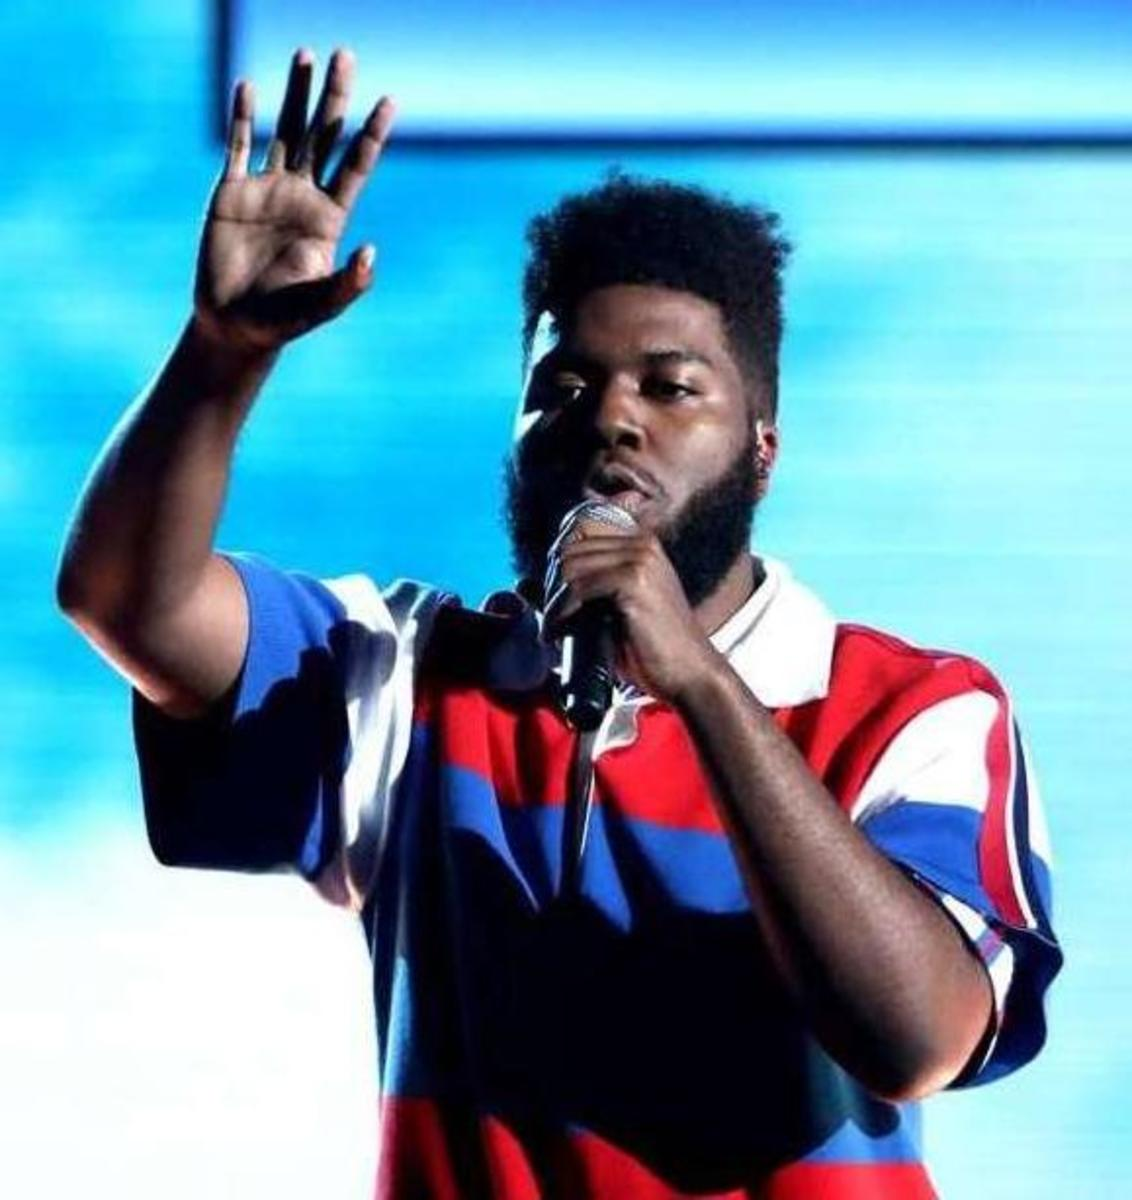 Khalid performing on stage